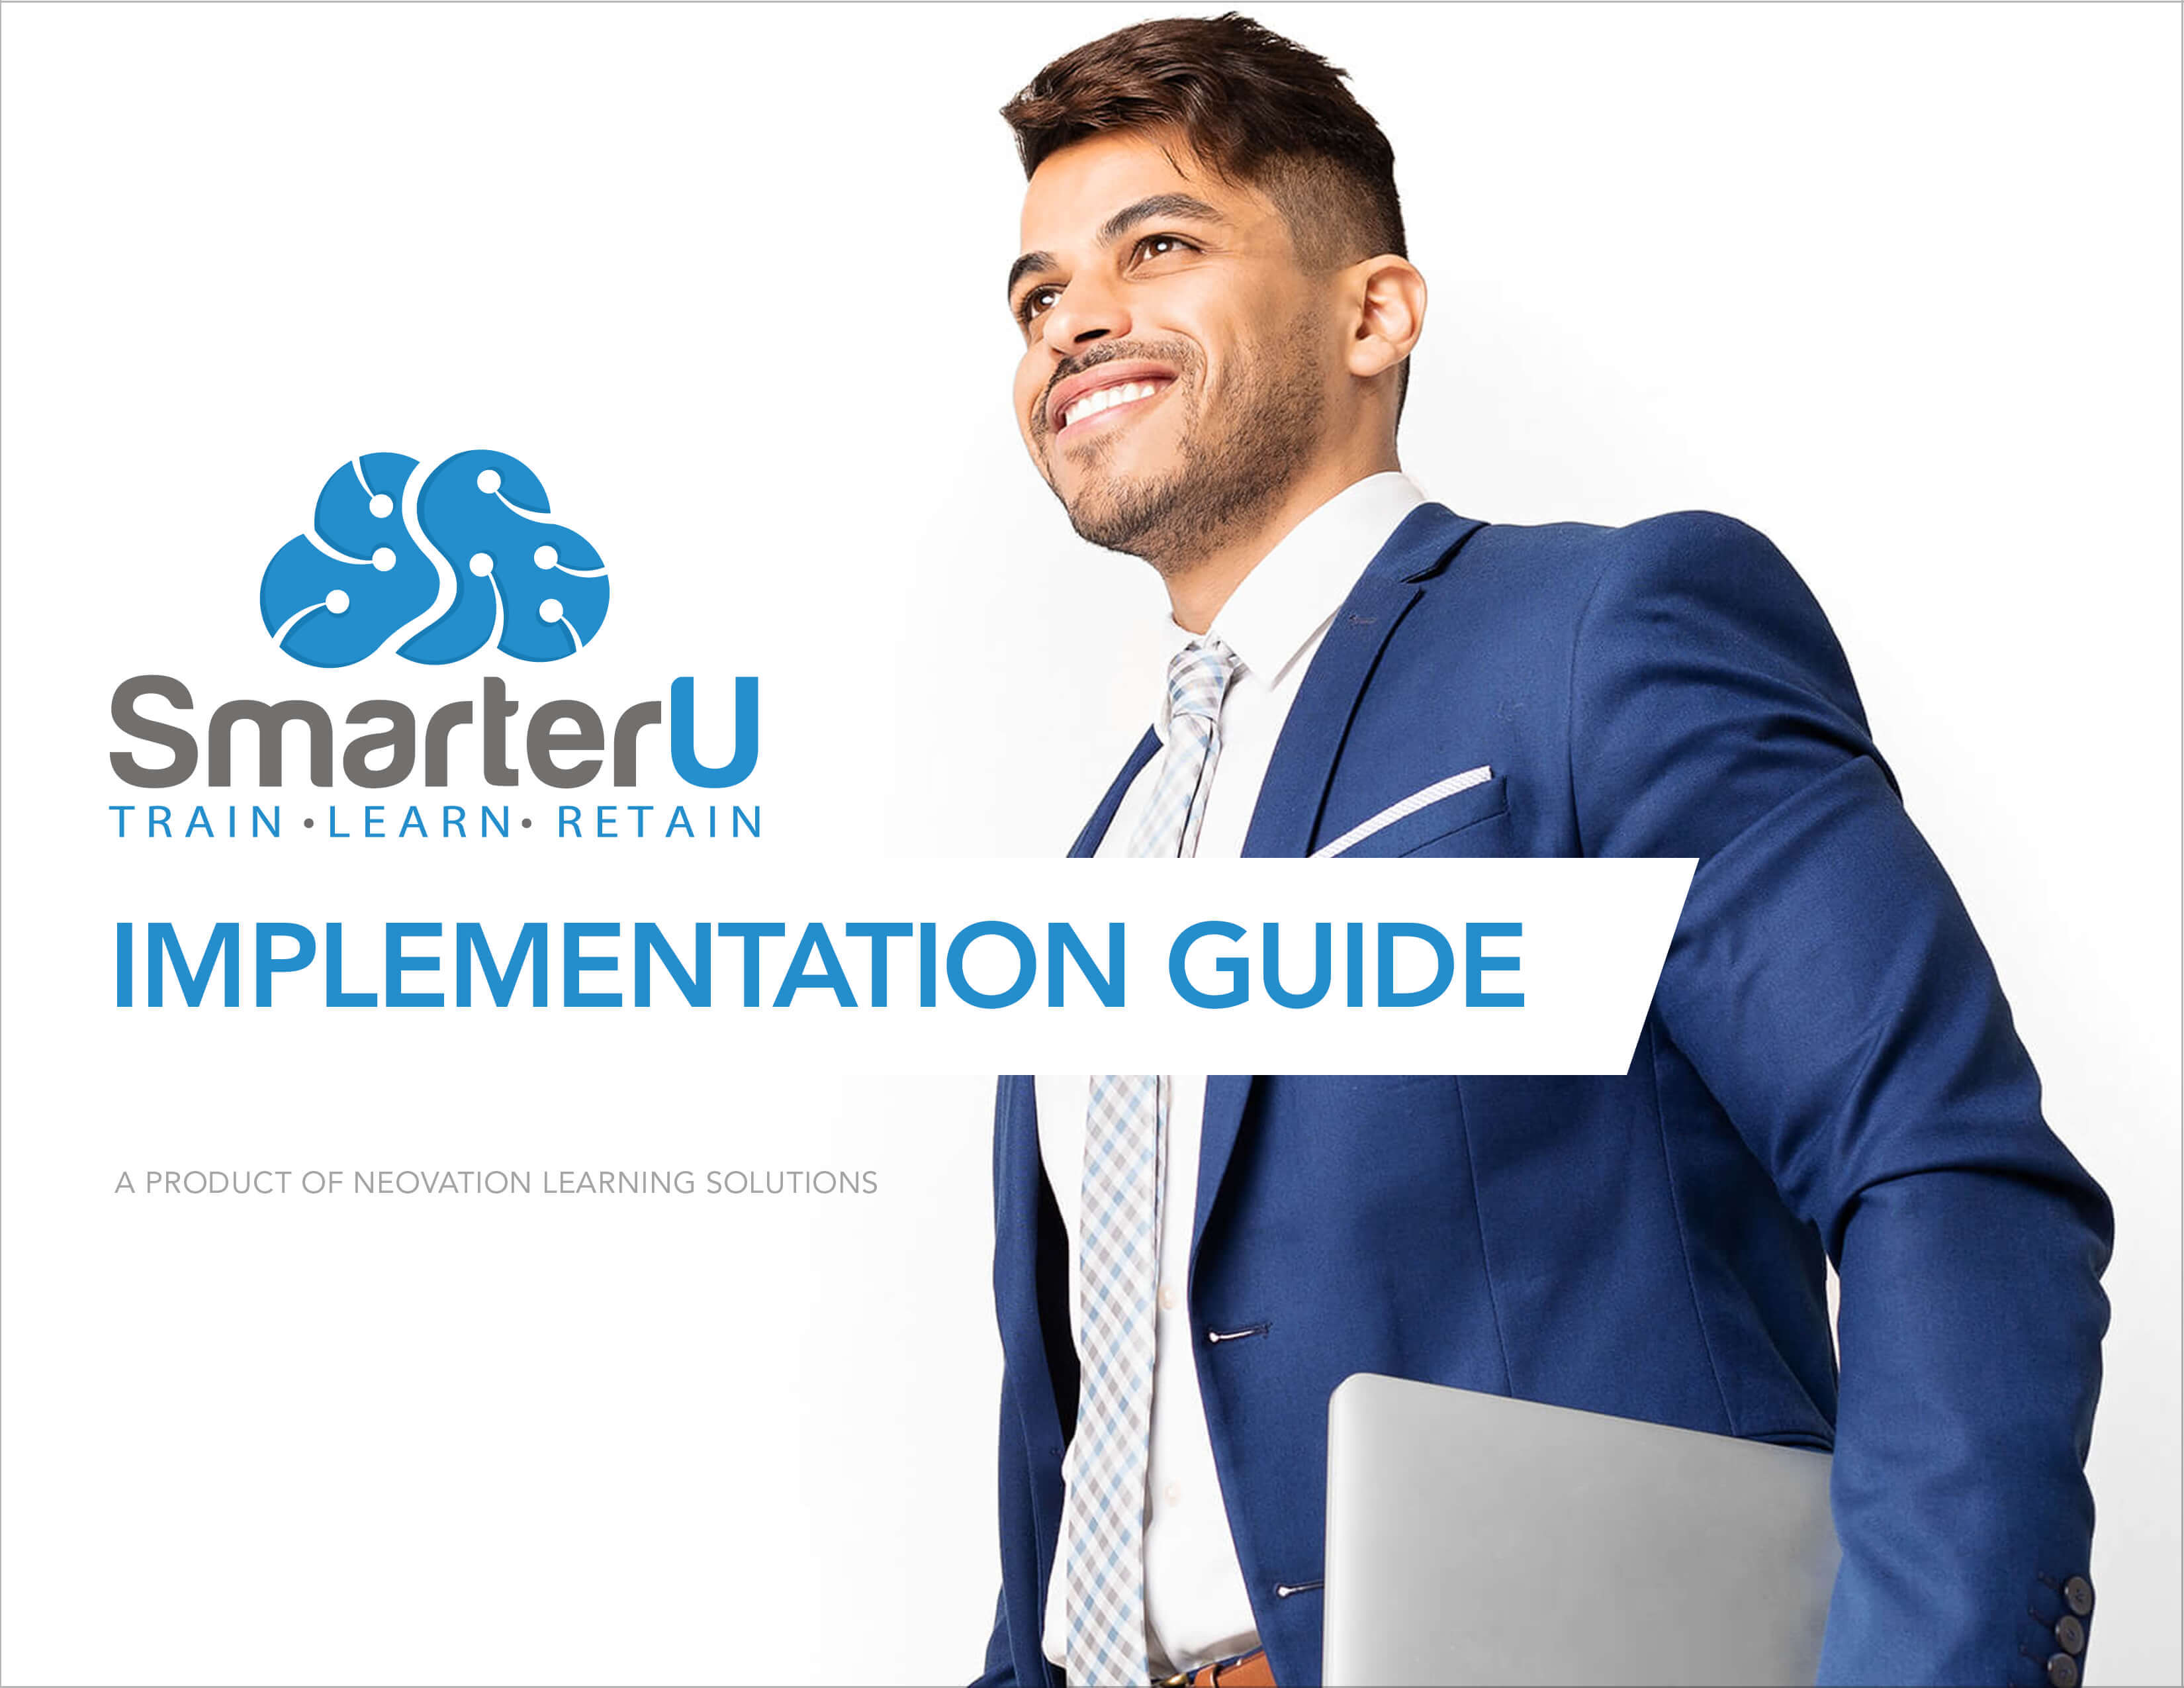 Cover of the implementation guide depicting a happy businessman in a dark blue suit - SmarterU LMS Online Training Software